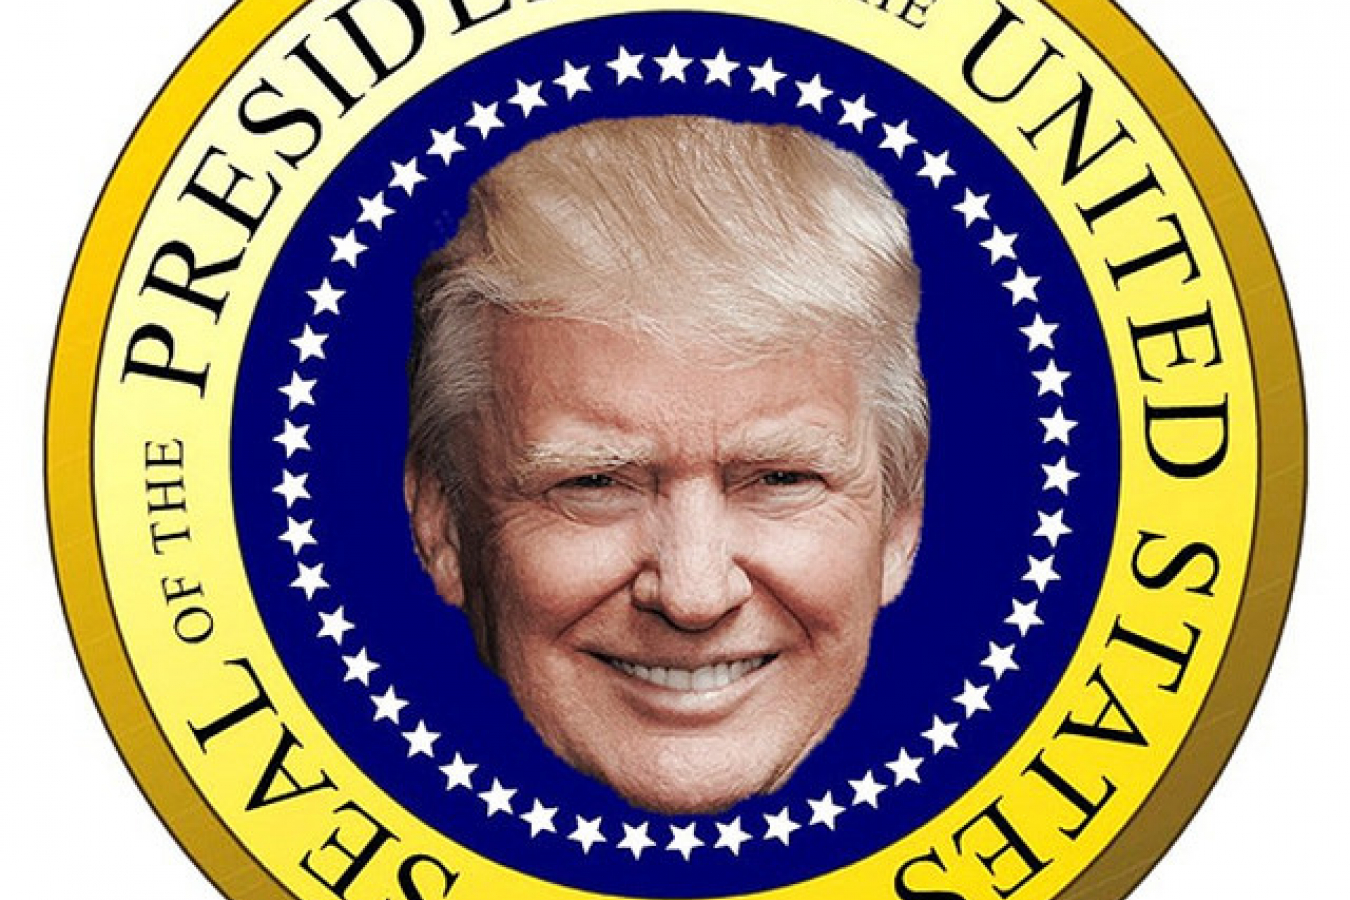 Donald trump takes aim at us l1b visa extensions making them more president trump seal thecheapjerseys Gallery